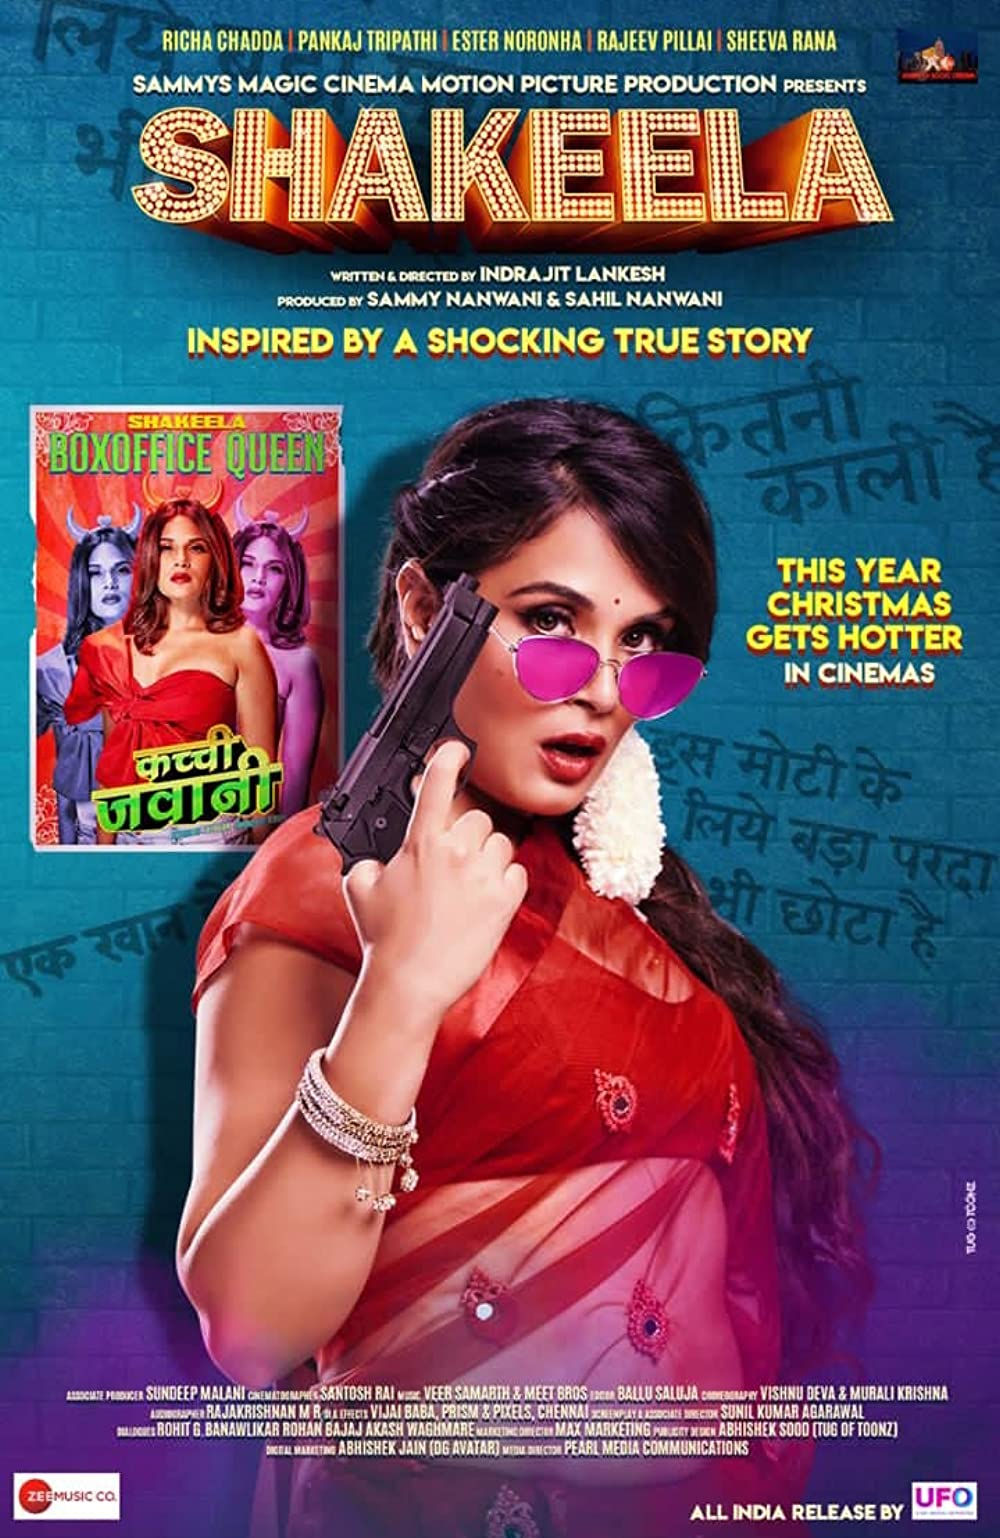 Shakeela (2020) Hindi Movie HDRip 720p AAC